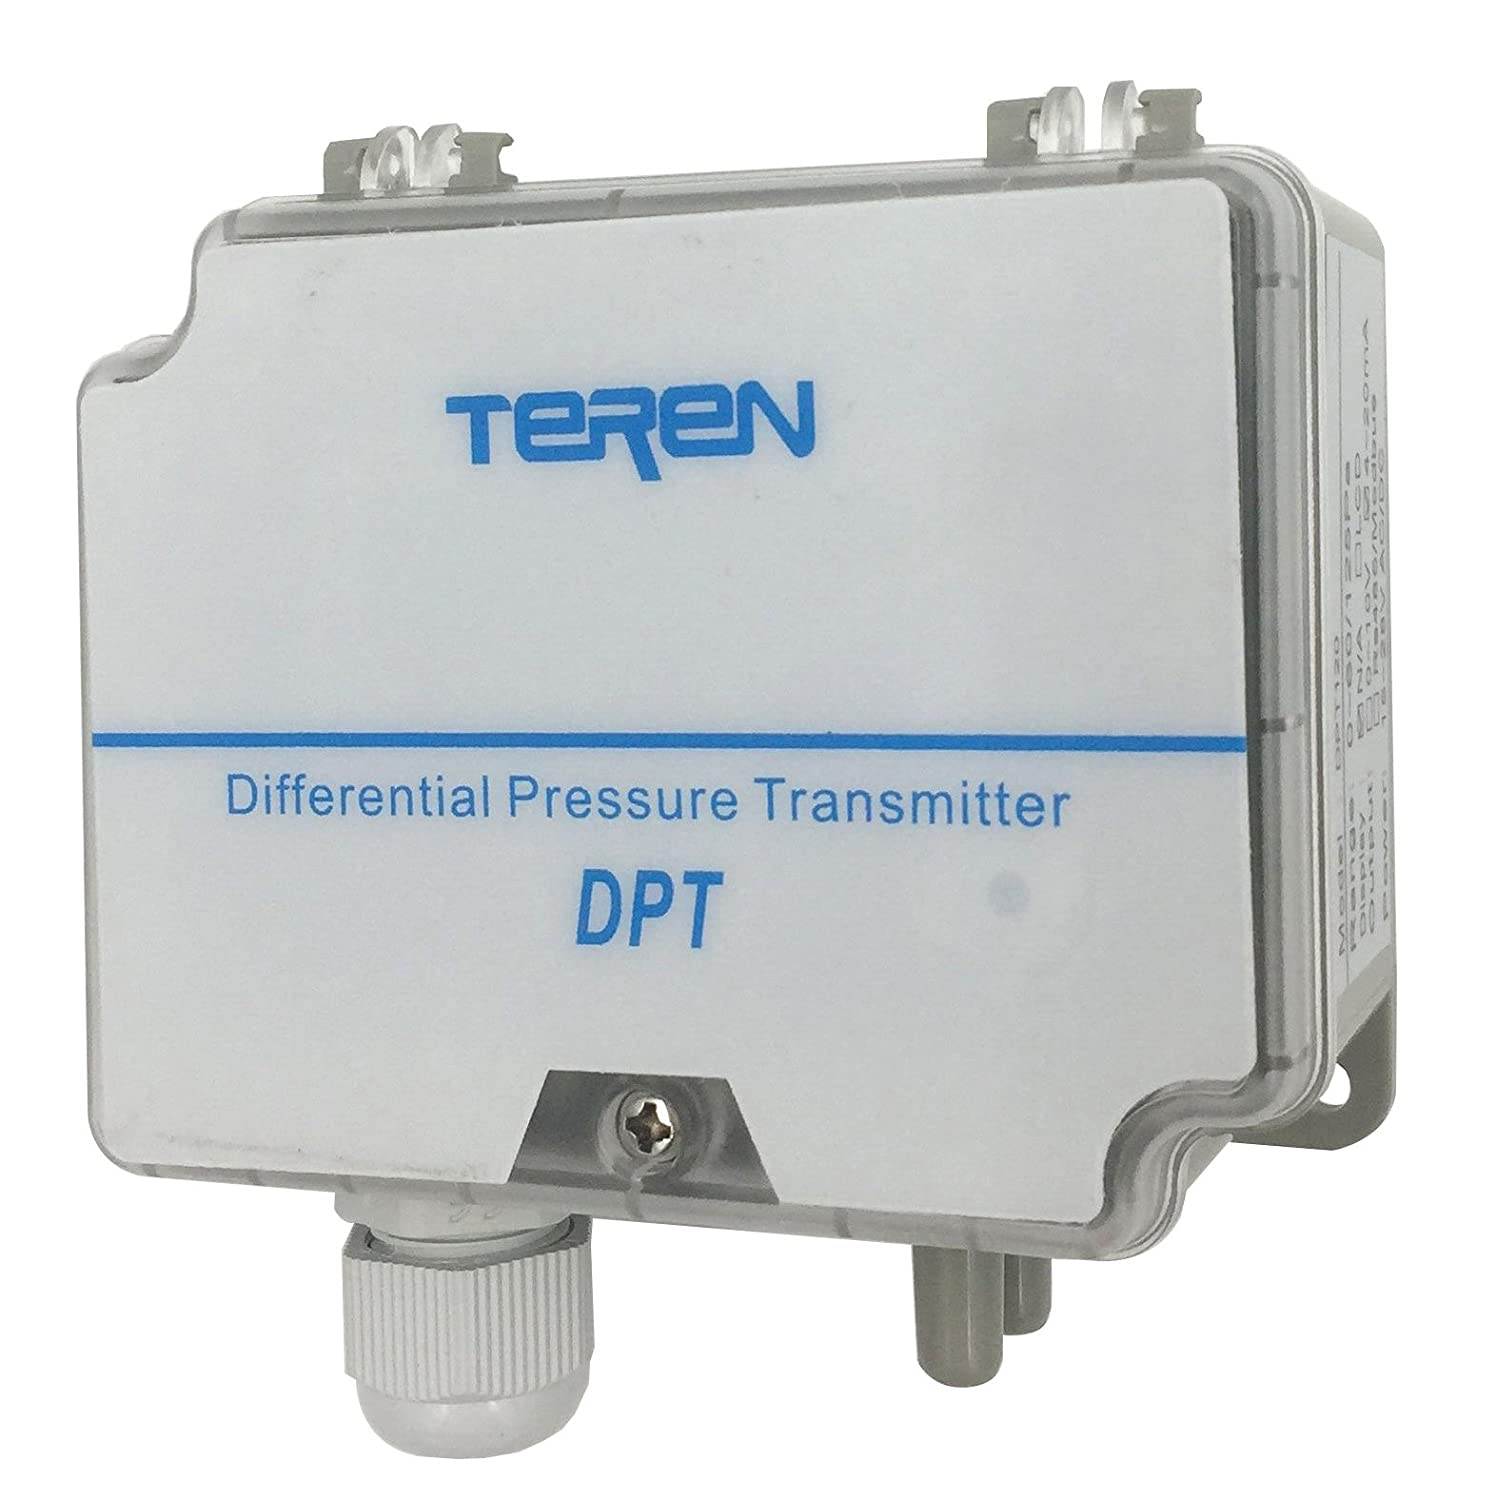 Wall Mount 500 Low Range 1.0 5 Units Selectable 1/% Accuracy 4.0 WC /& 250 4 to 20mA 1000 Pa TEREN Differential Pressure Transmitter DPT320 2.0